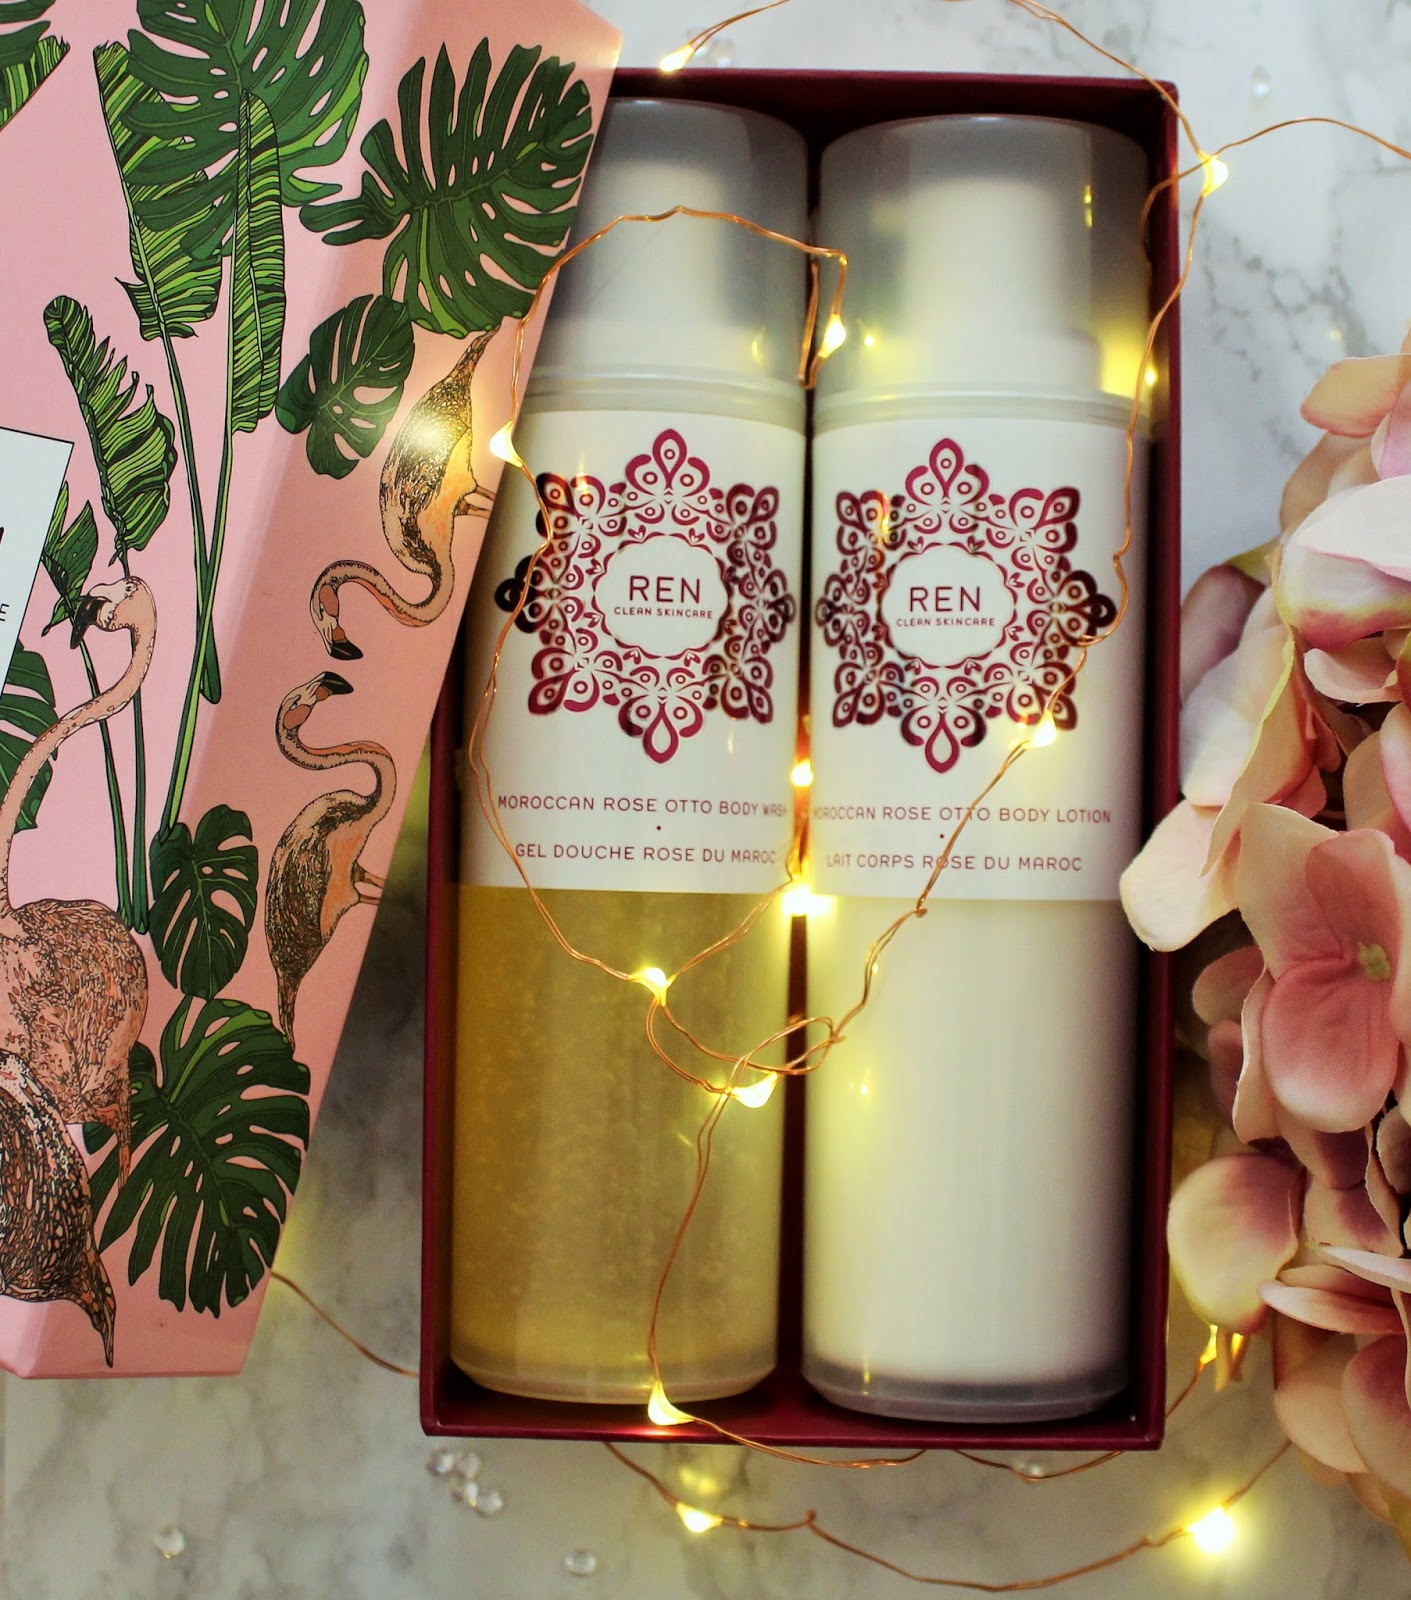 New In From Ren Clean Skincare - & Now To Sleep Pillow Spray Plus Christmas 2017 Gifts - 5